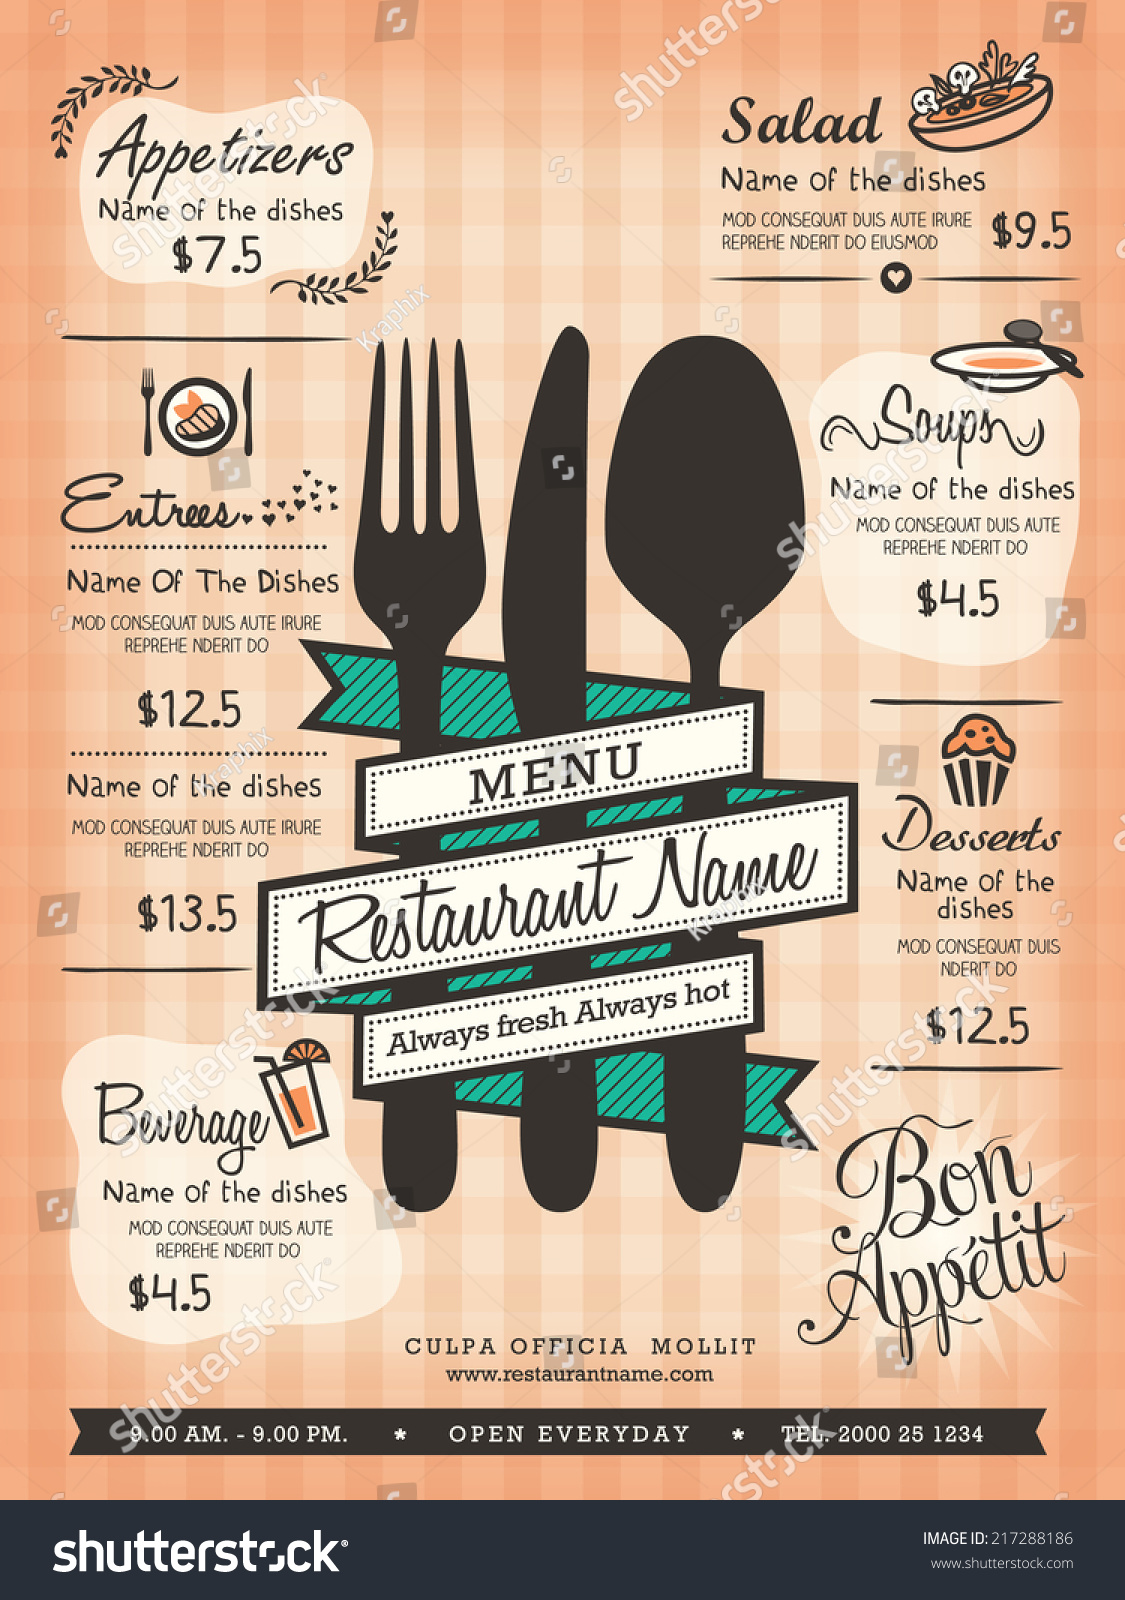 Restaurant Menu Design Template Layout Stock Vector 217288186 ...